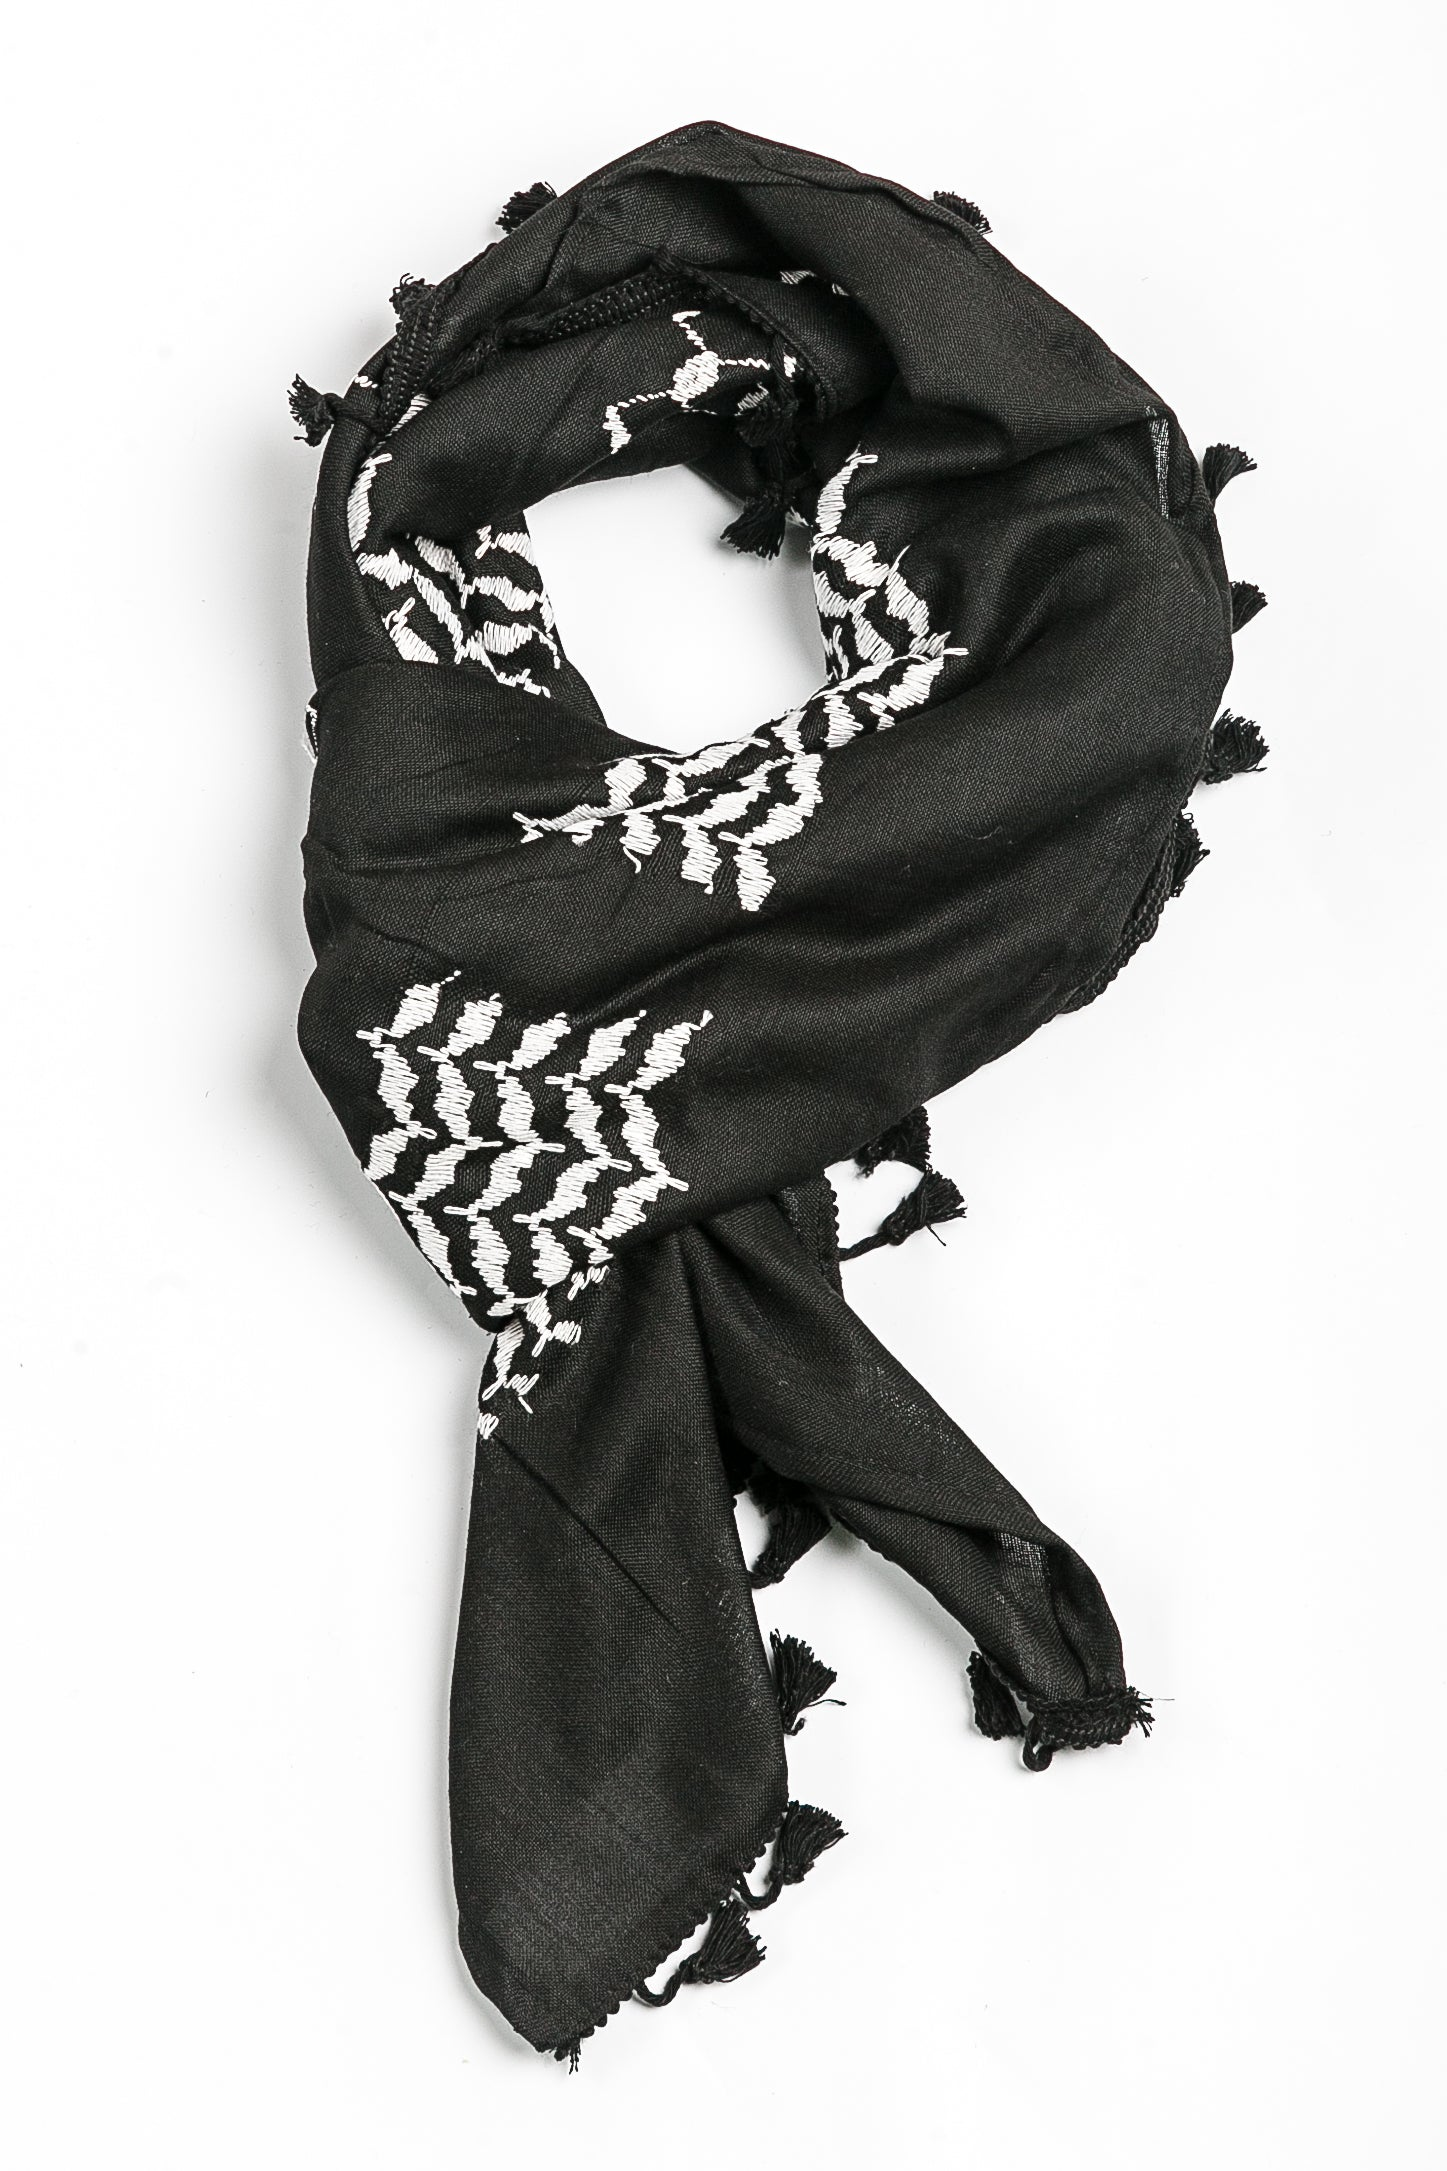 Black and white Hirbawi keffiyeh inverted